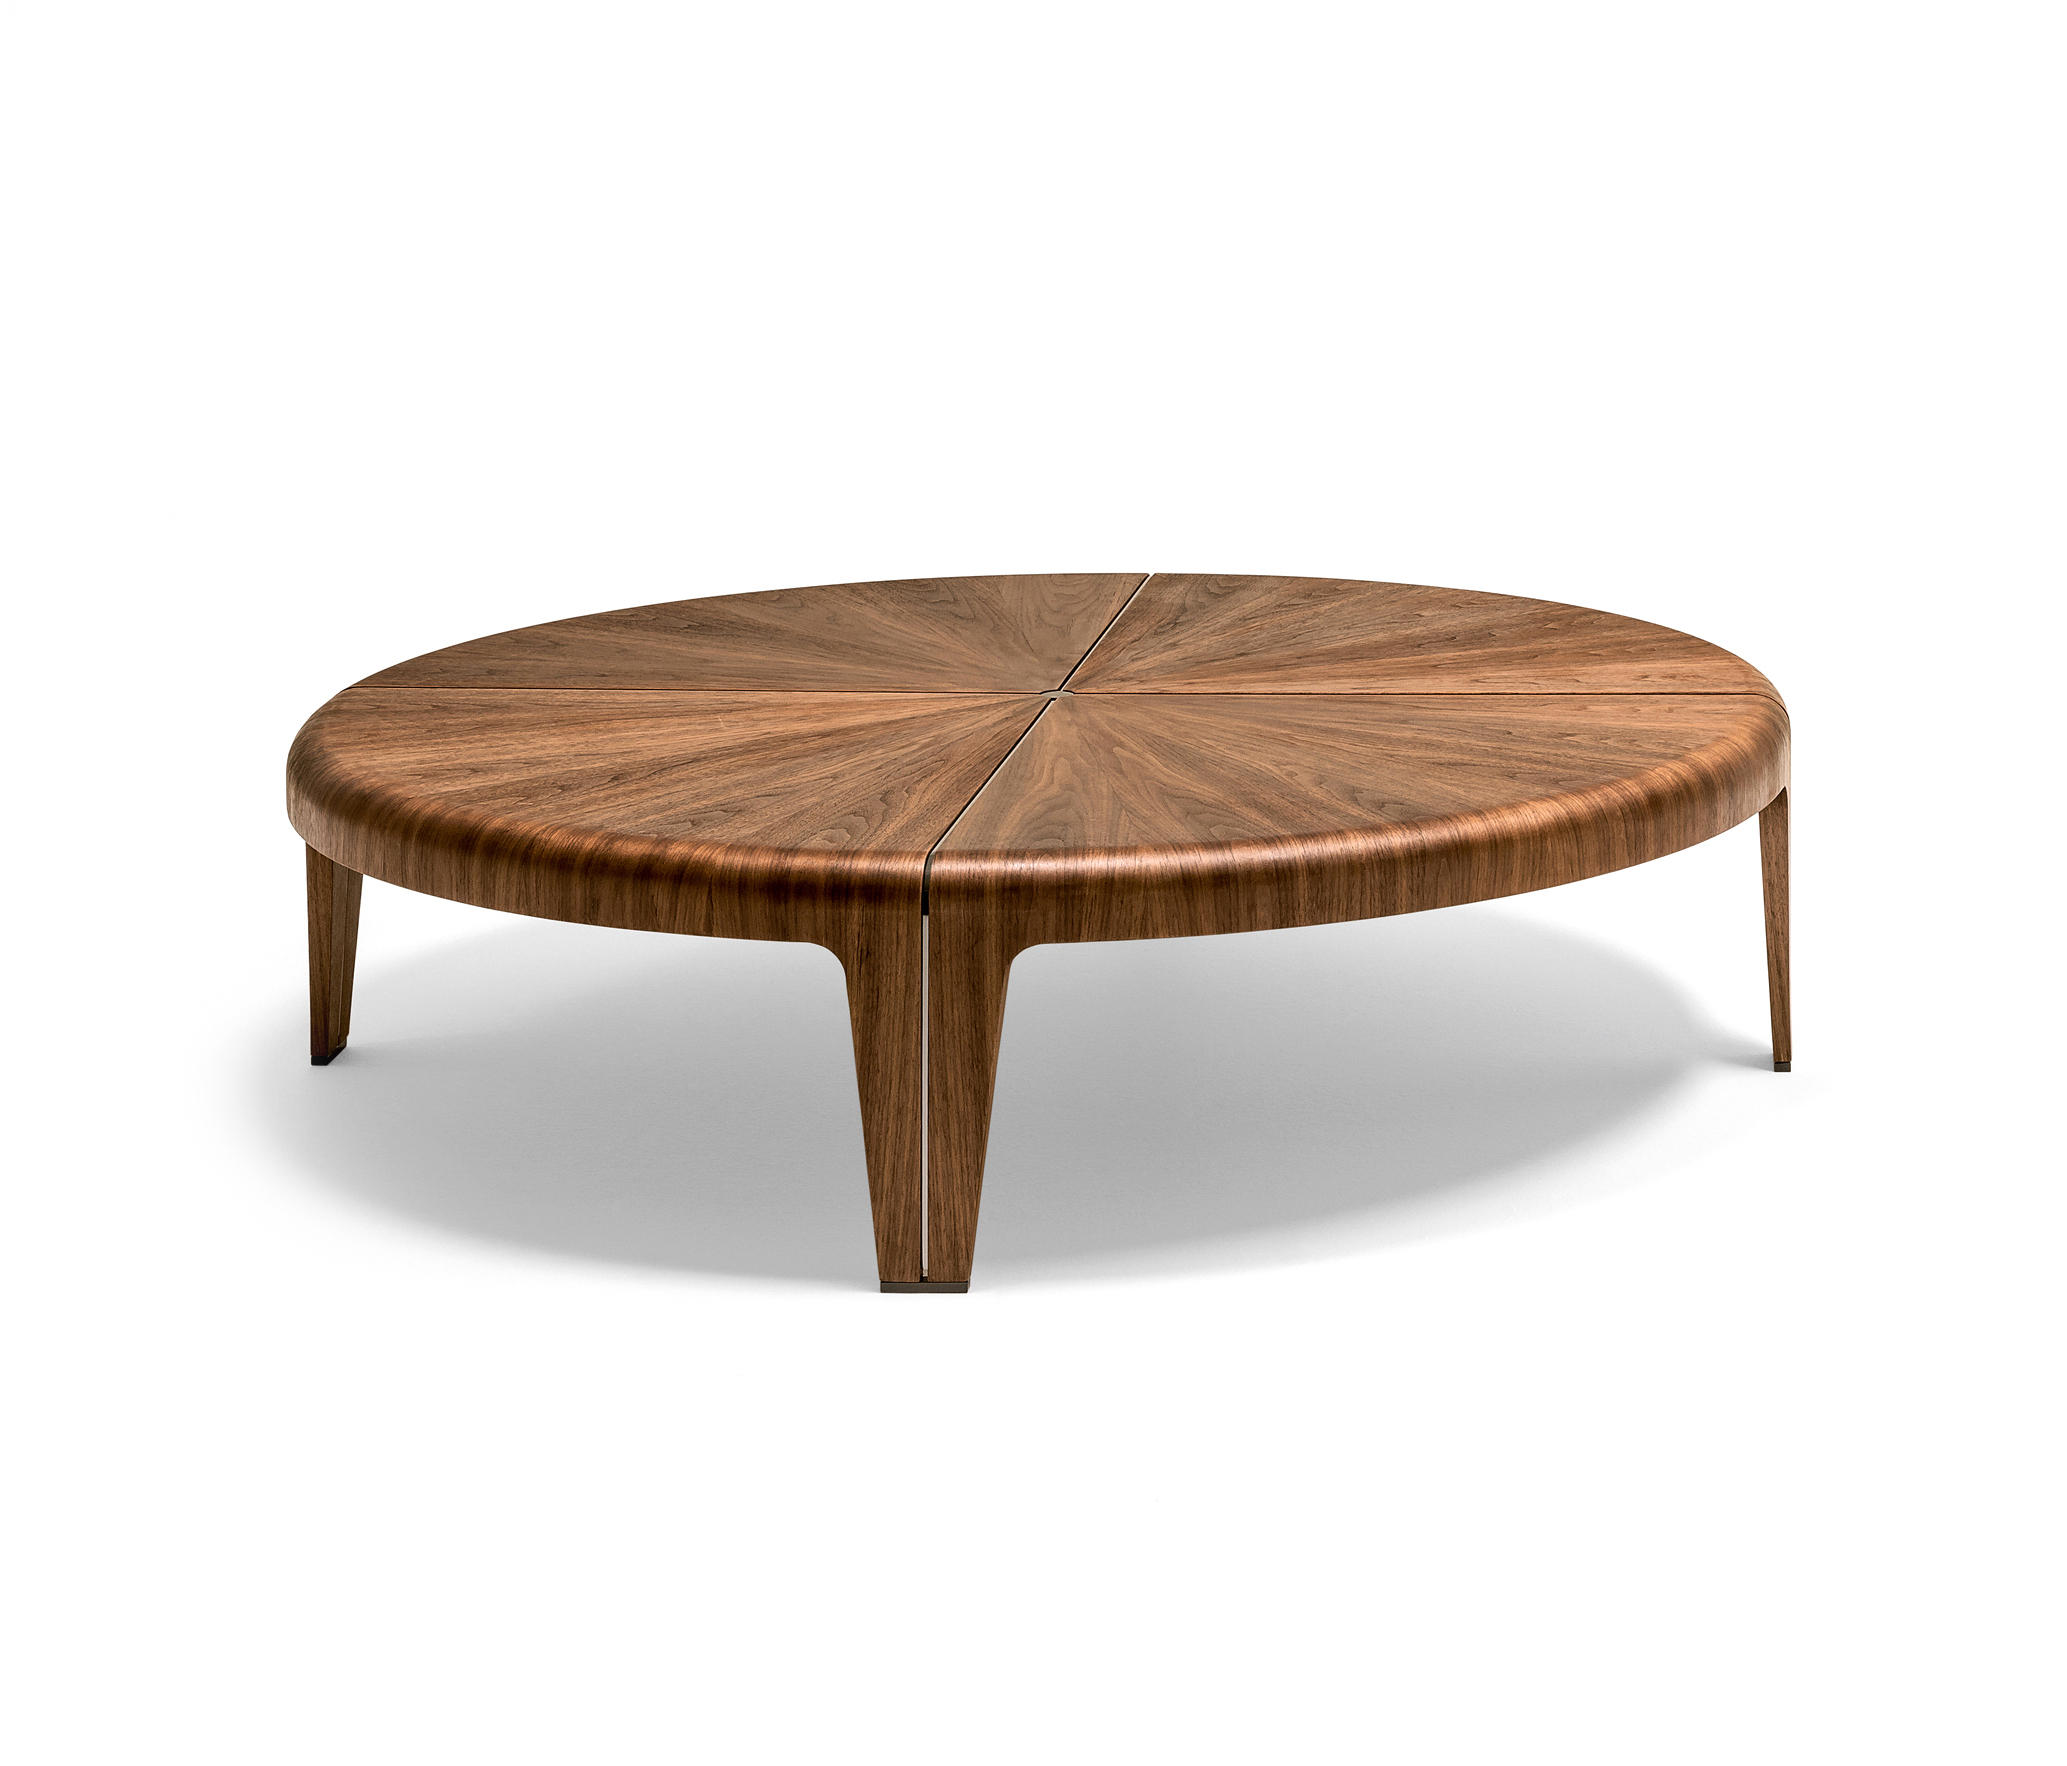 Low Round Coffee Tables Best Home Design 2018